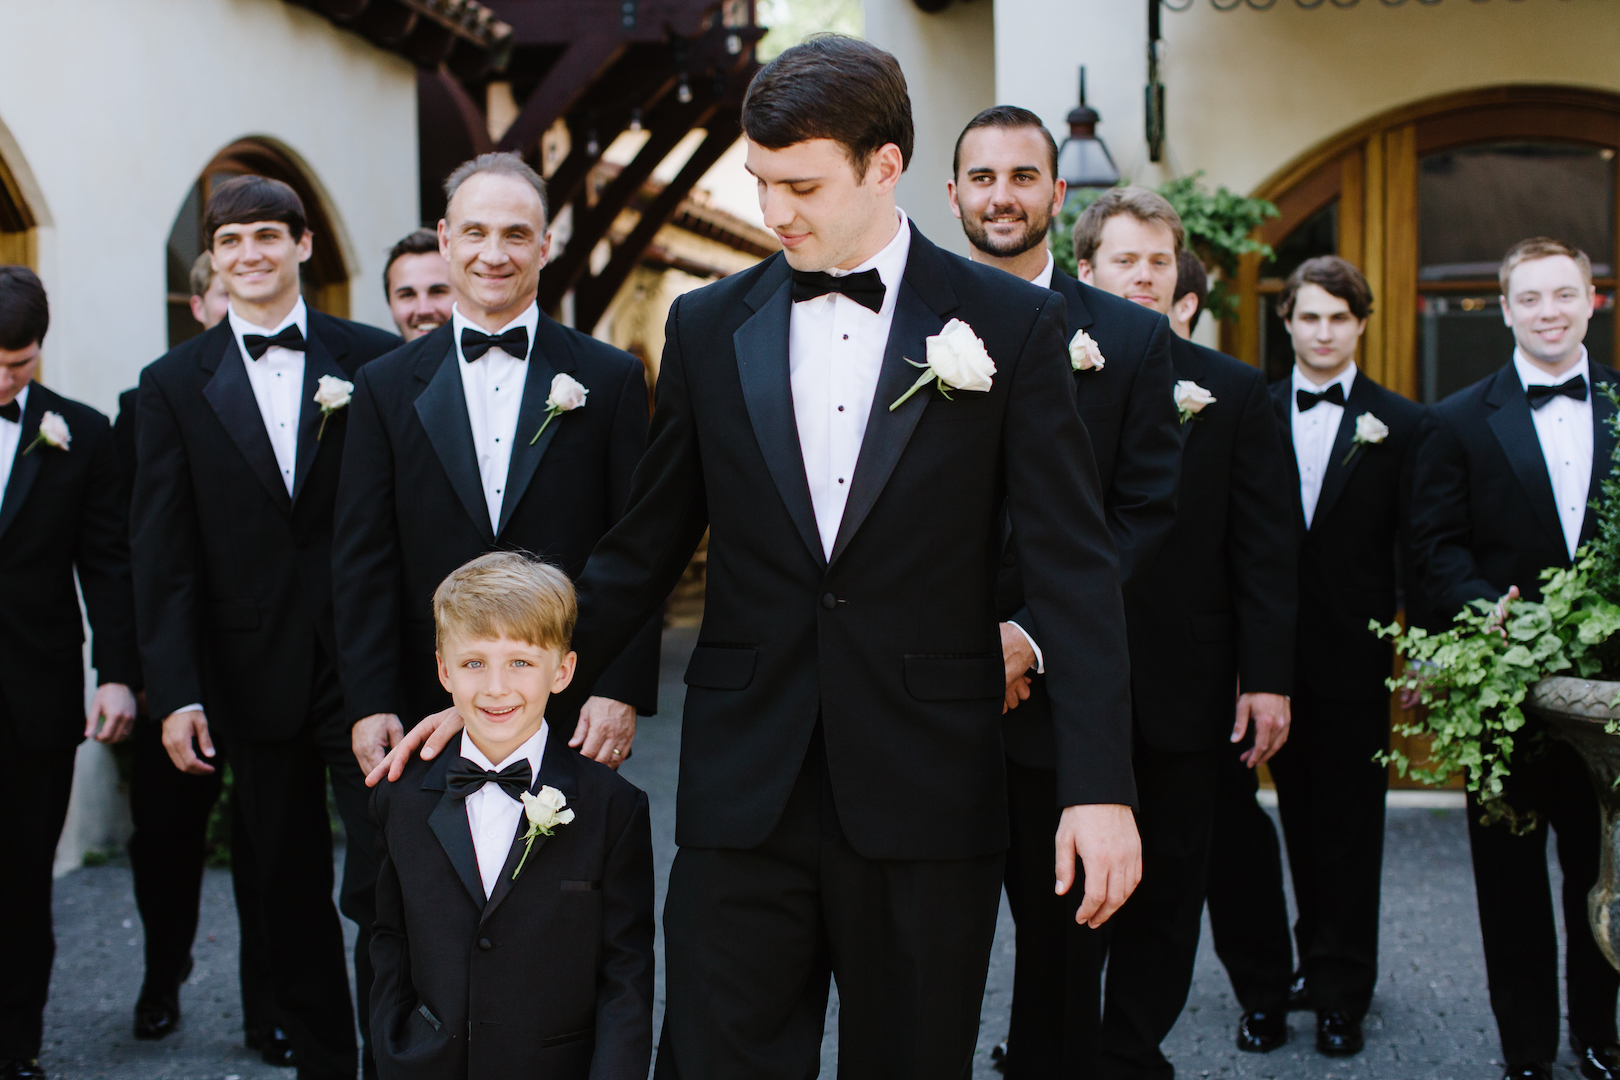 DolanWeddingGroomsman-356.jpg